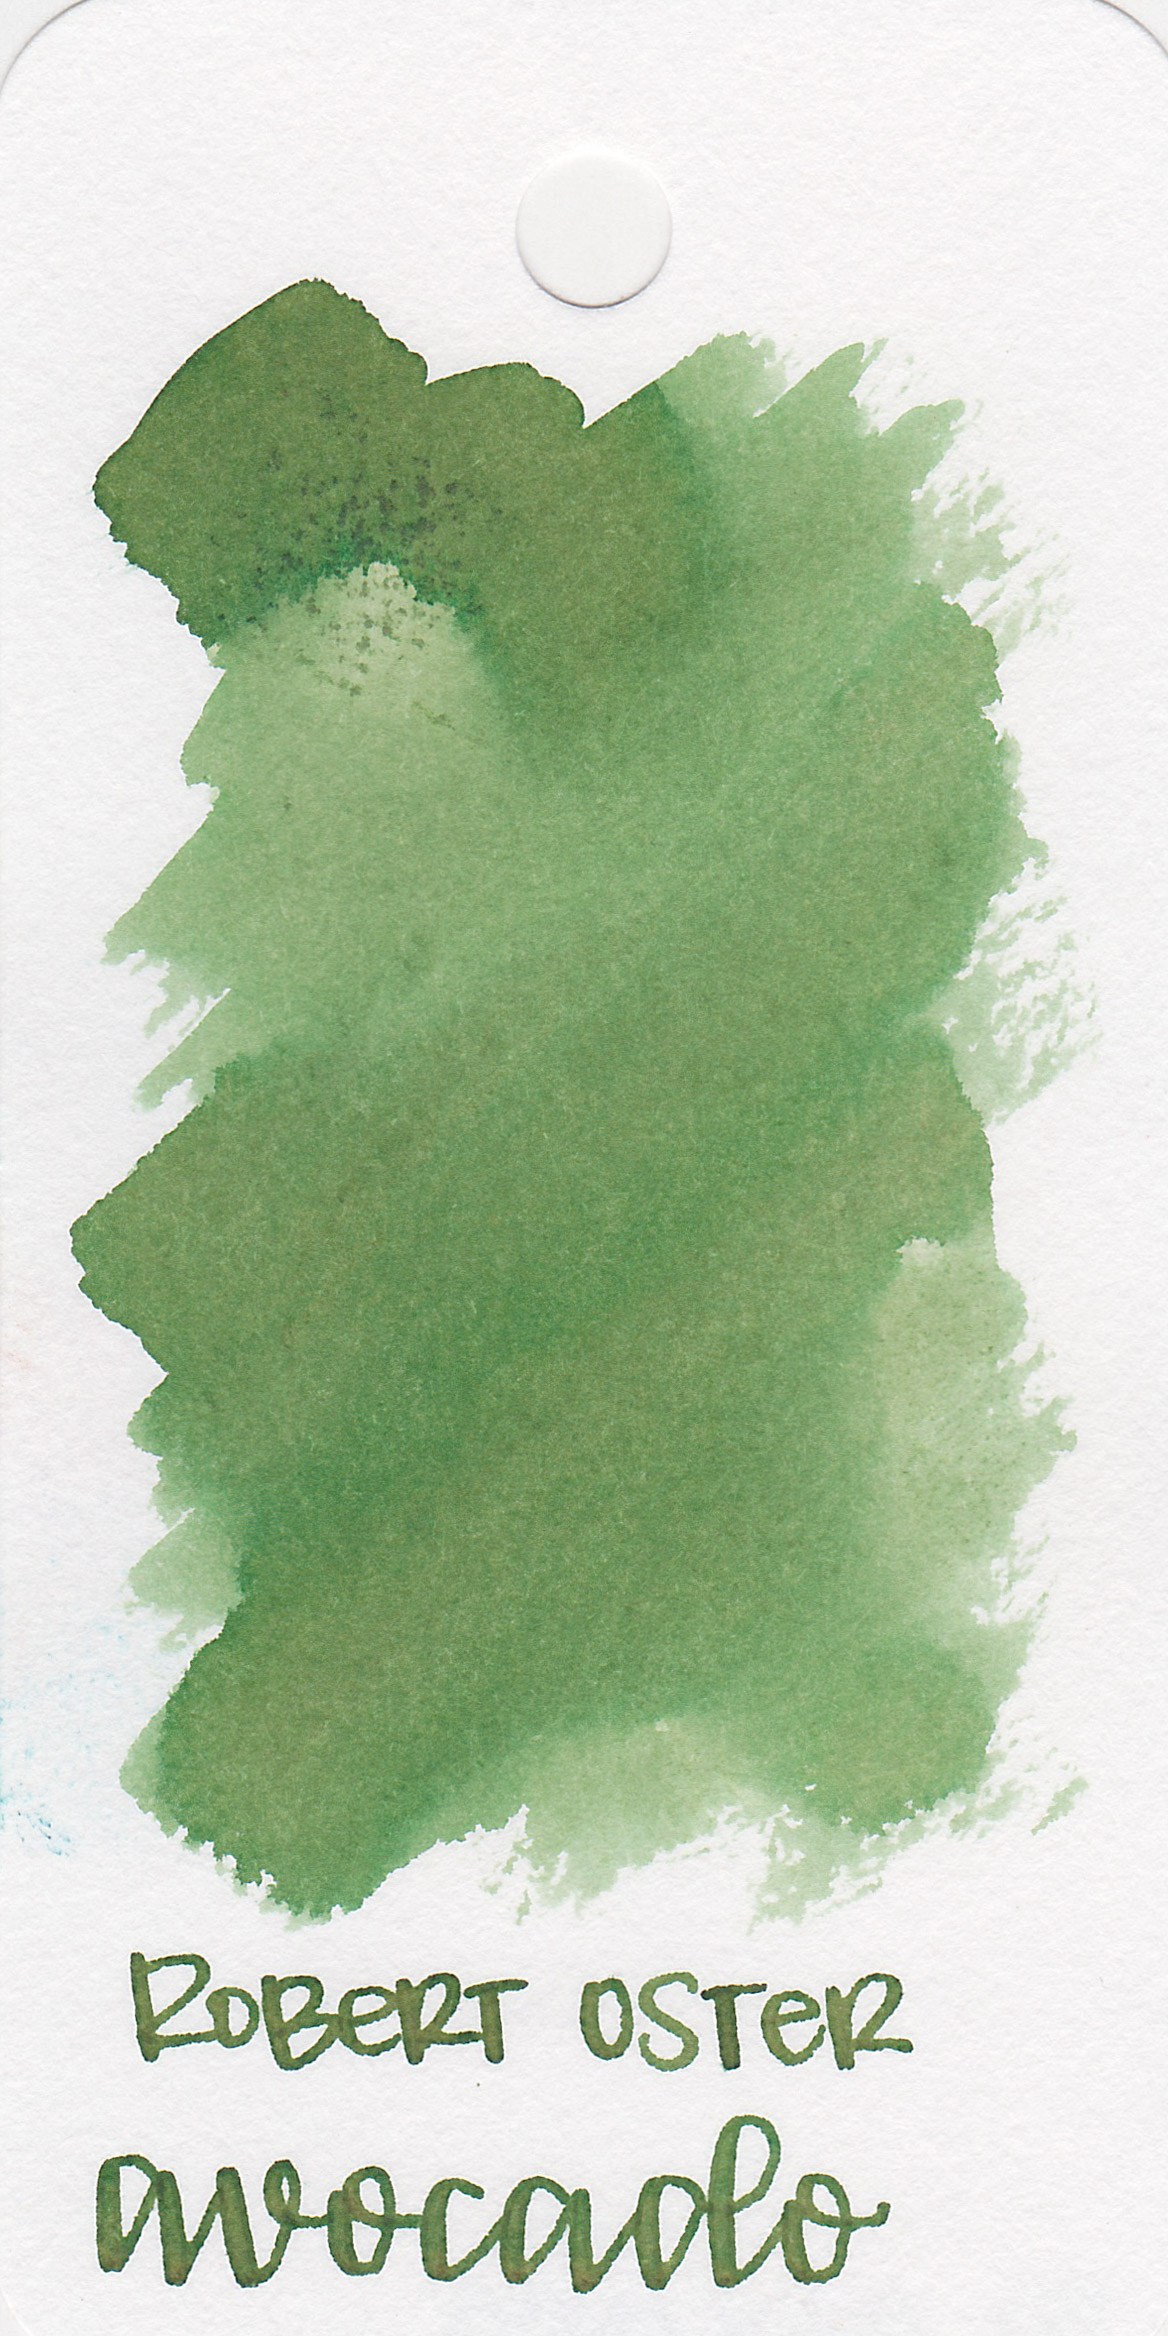 The color: - Avocado is a medium unsaturated green, it reminds me of those green kitchen cabinets from the 70's.